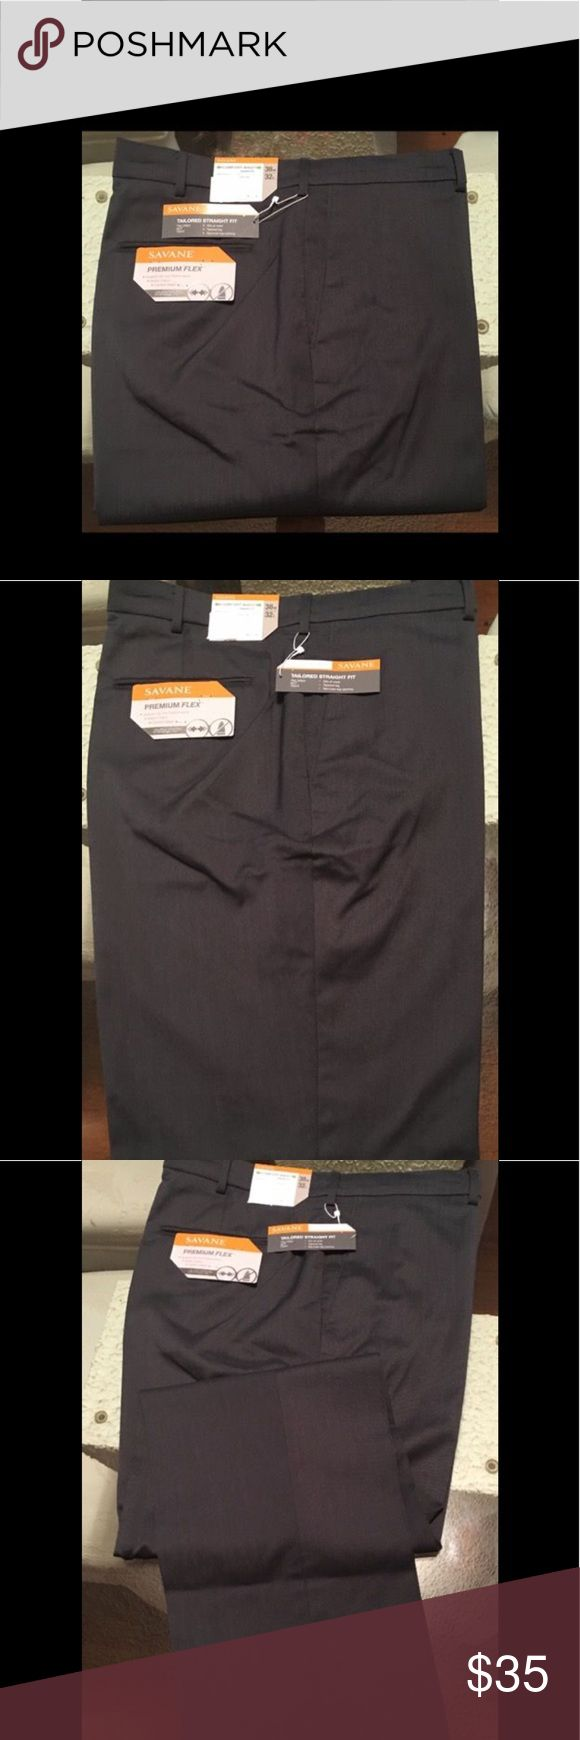 """MENS PREMIUM FLEX MICRO TIC STRETCH DRESS PANTS ✅ """" SAVANE """" MEN'S PREMIUM FLEX MICRO TIC STRETCH DRESS PANTS✅ * At first sight. These men's SAVANE dress pants make an instant impression with their tailored fit and modern styling !! 😀  ( BIN# U70-8429 ) NEW NEW !!  GET IT !  🎁 SAVANE Pants Dress"""